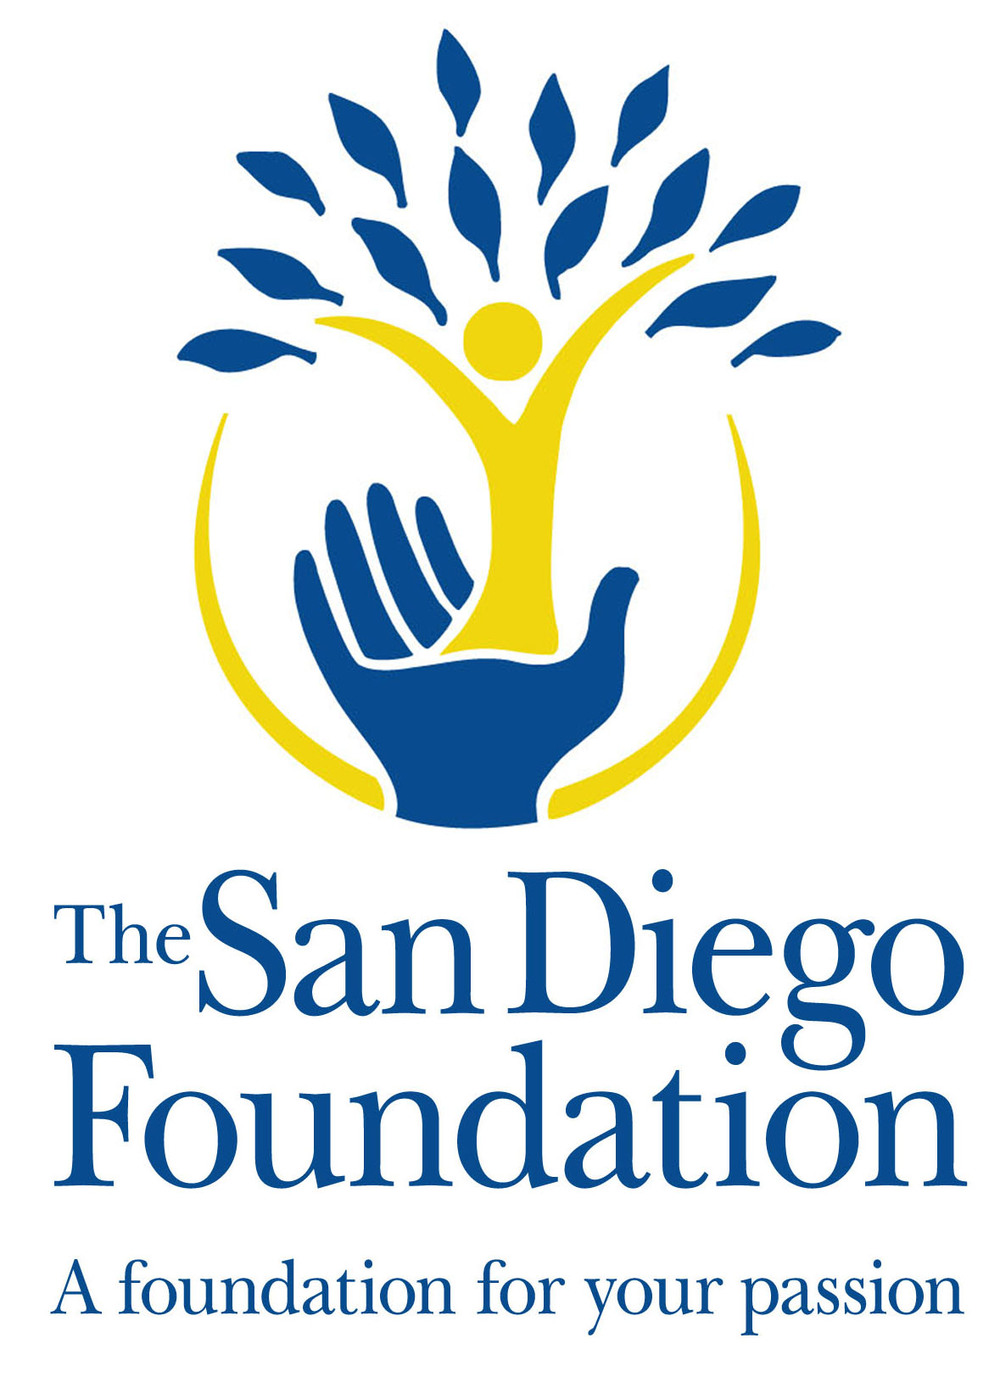 San Diego Foundation vertical.jpg